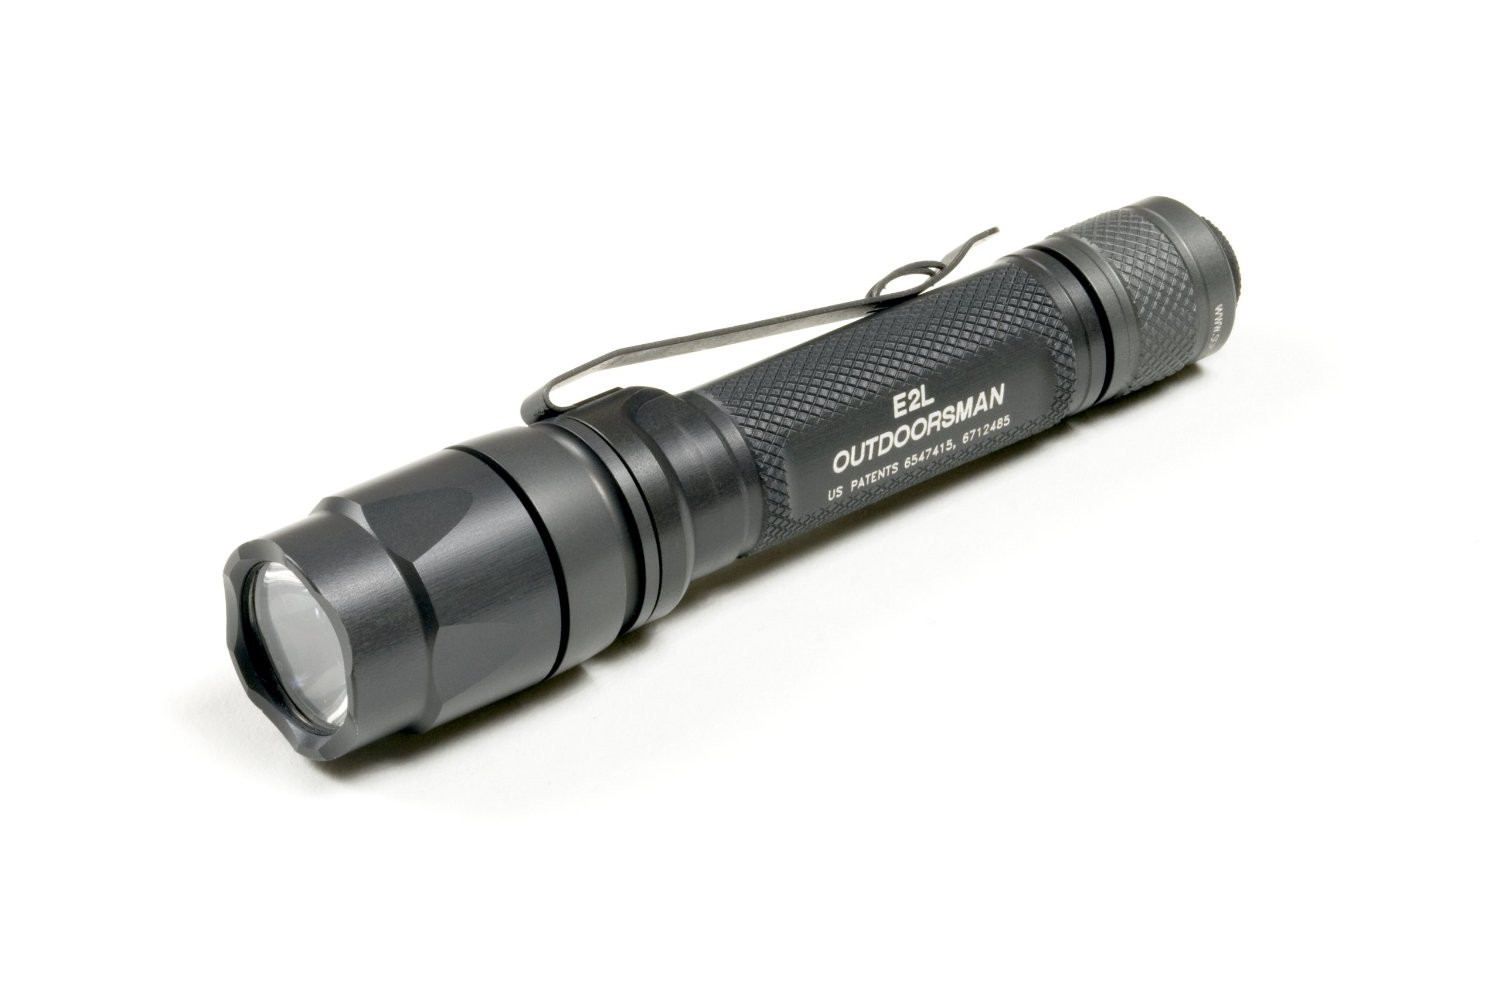 Best Tactical Flashlights for Survival